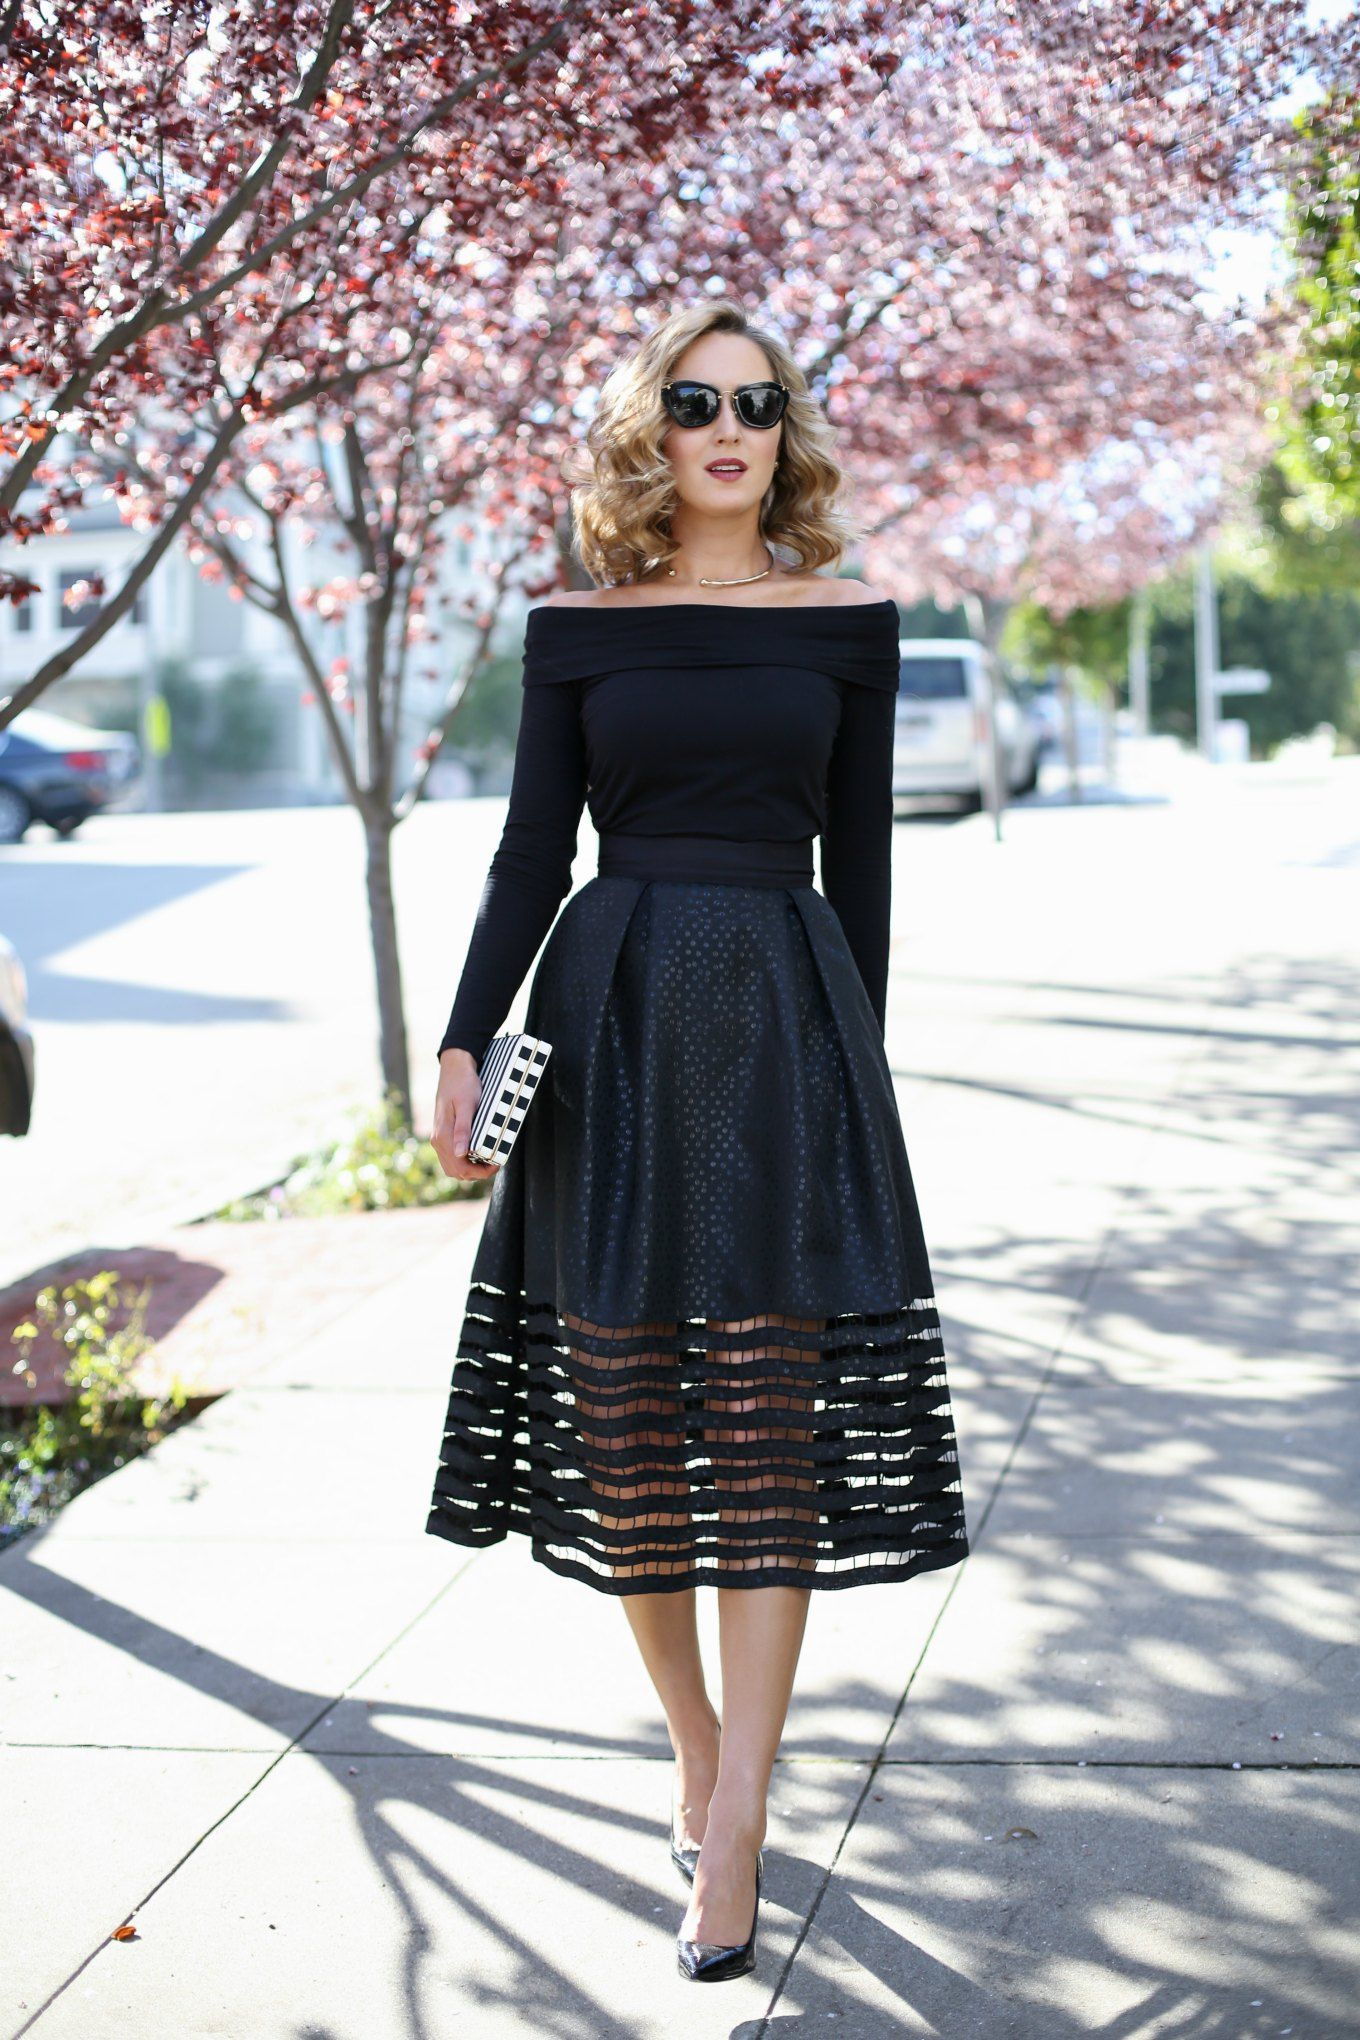 How to Be Parisian | Forever21, Skirts and Parisians